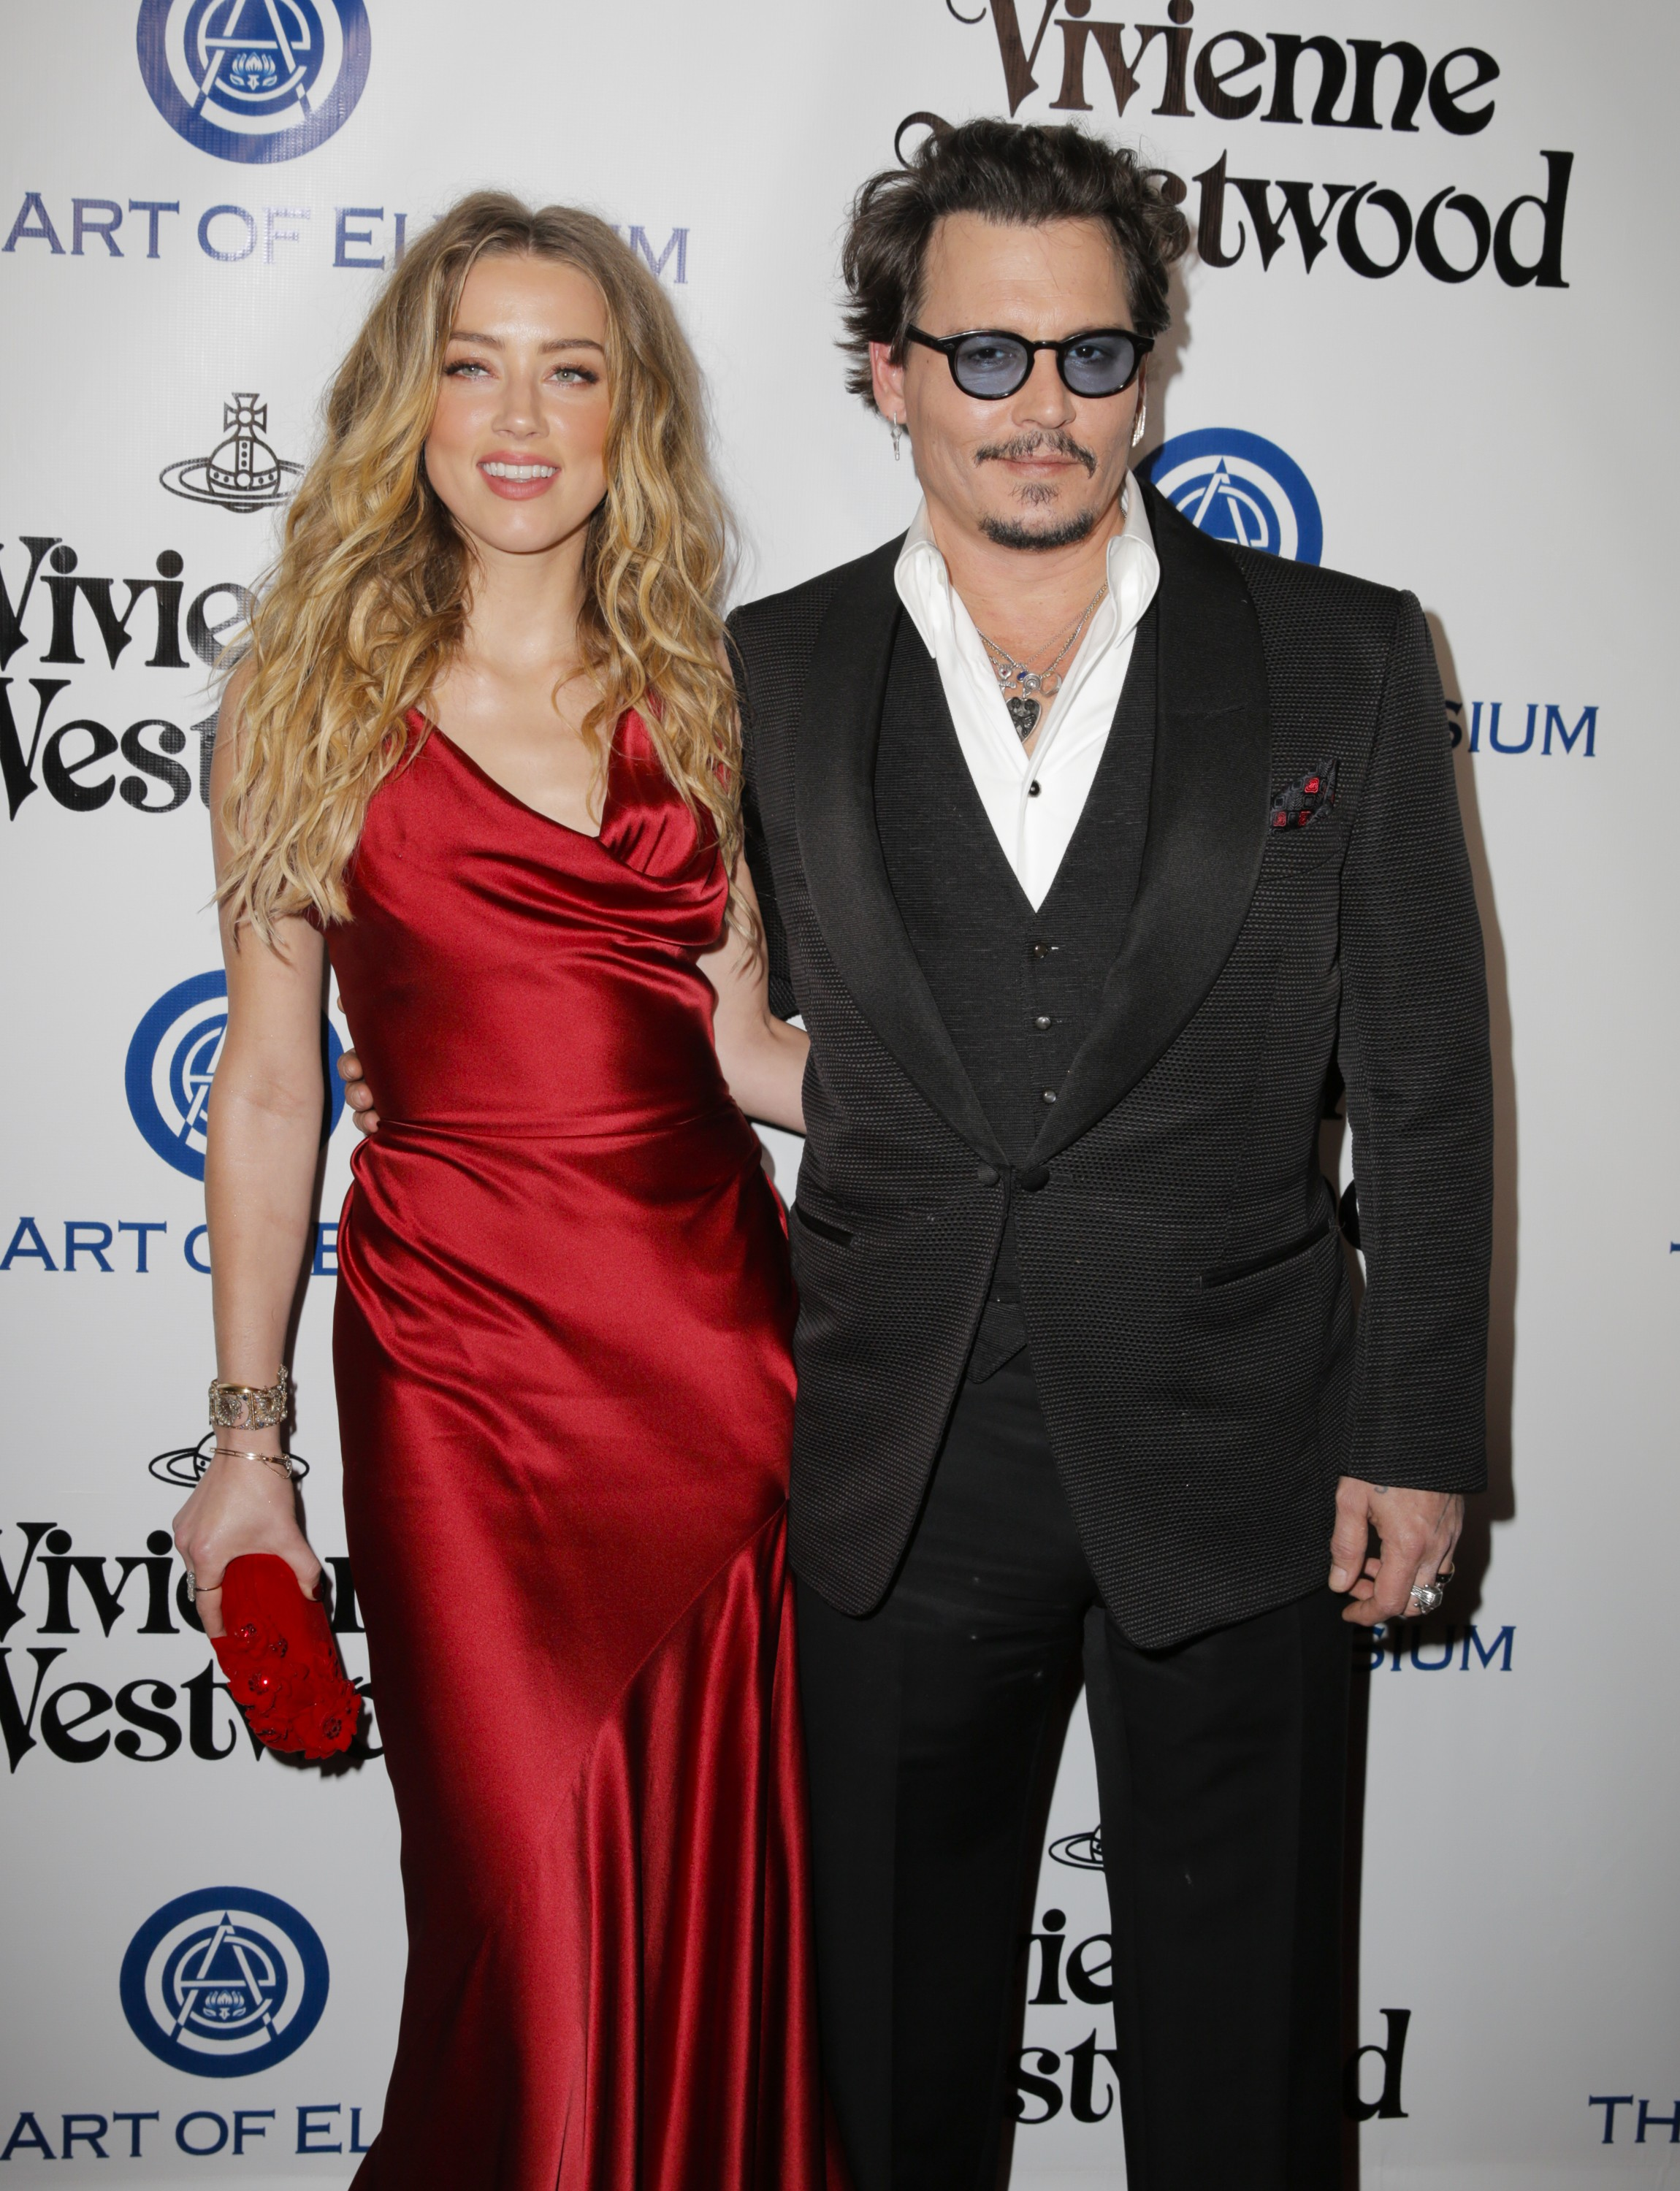 CULVER CITY, CA - JANUARY 09:  Actors Amber Heard (L) and Johnny Depp attend The Art of Elysium 2016 HEAVEN Gala presented by Vivienne Westwood & Andreas Kronthaler at 3LABS on January 9, 2016 in Culver City, California.  (Photo by Alison Buck/Getty Image (Foto: Getty Images)